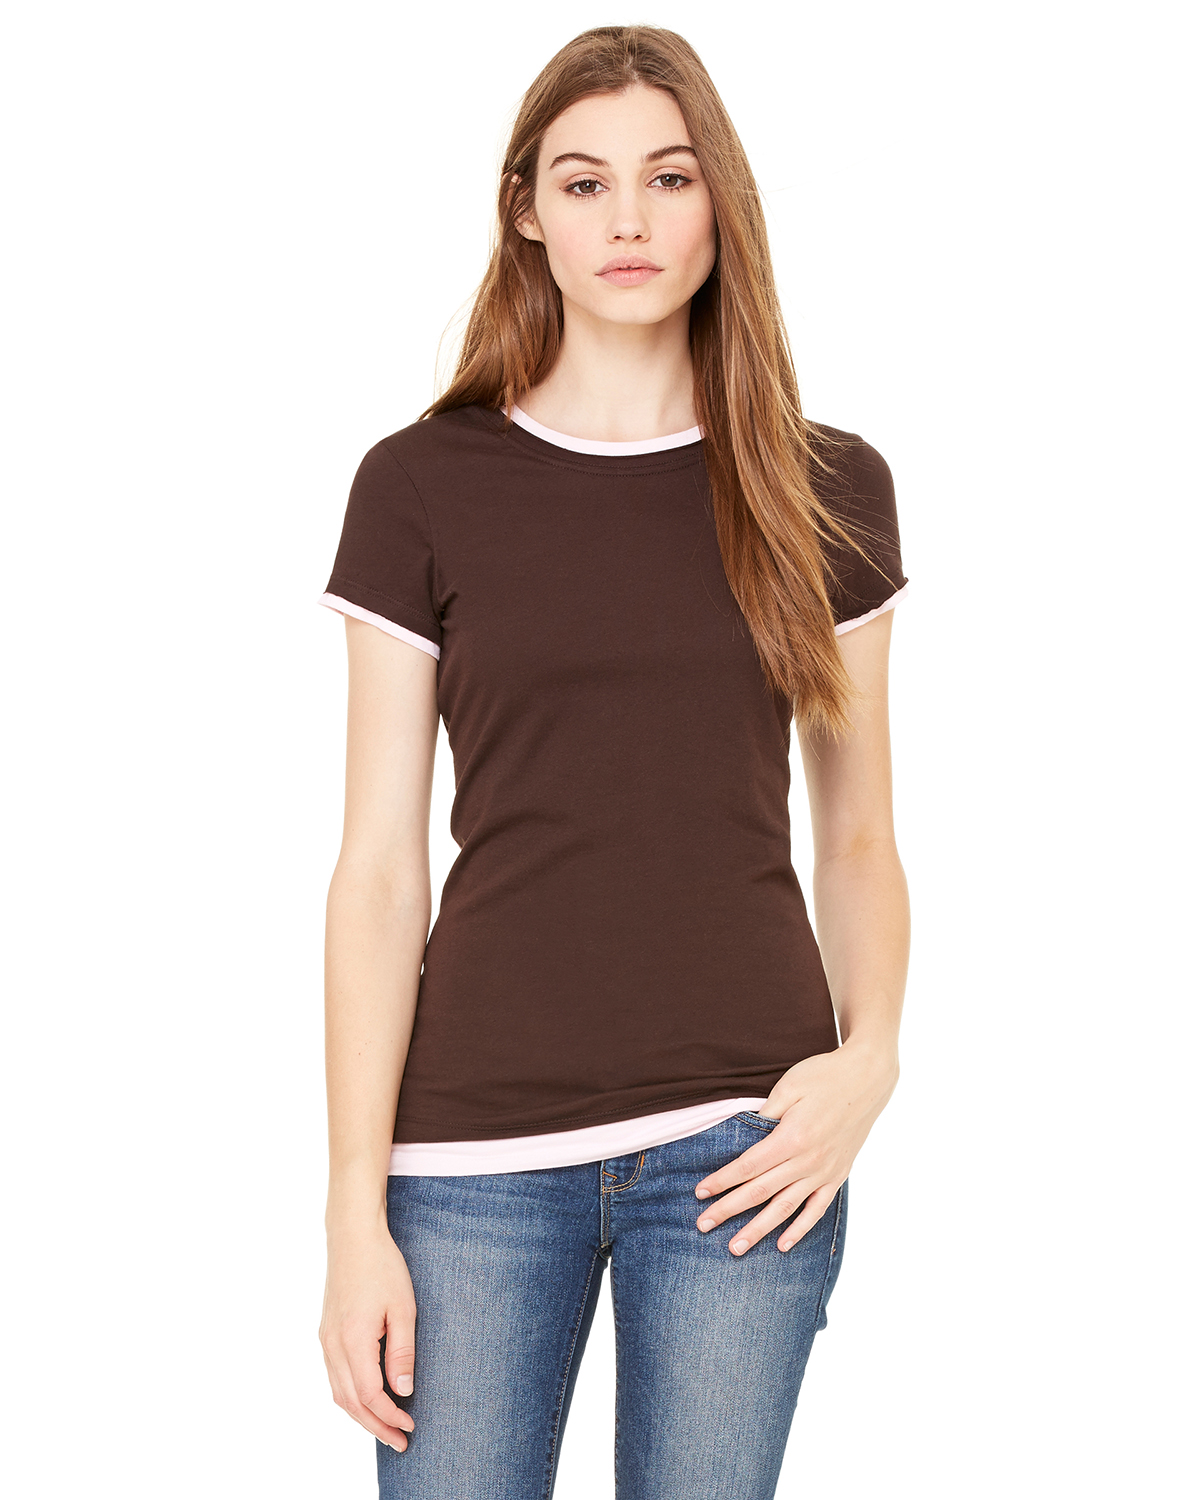 Canvas B8102 - Ladies' Sheer Jersey Short-Sleeve 2-in-1 Tee